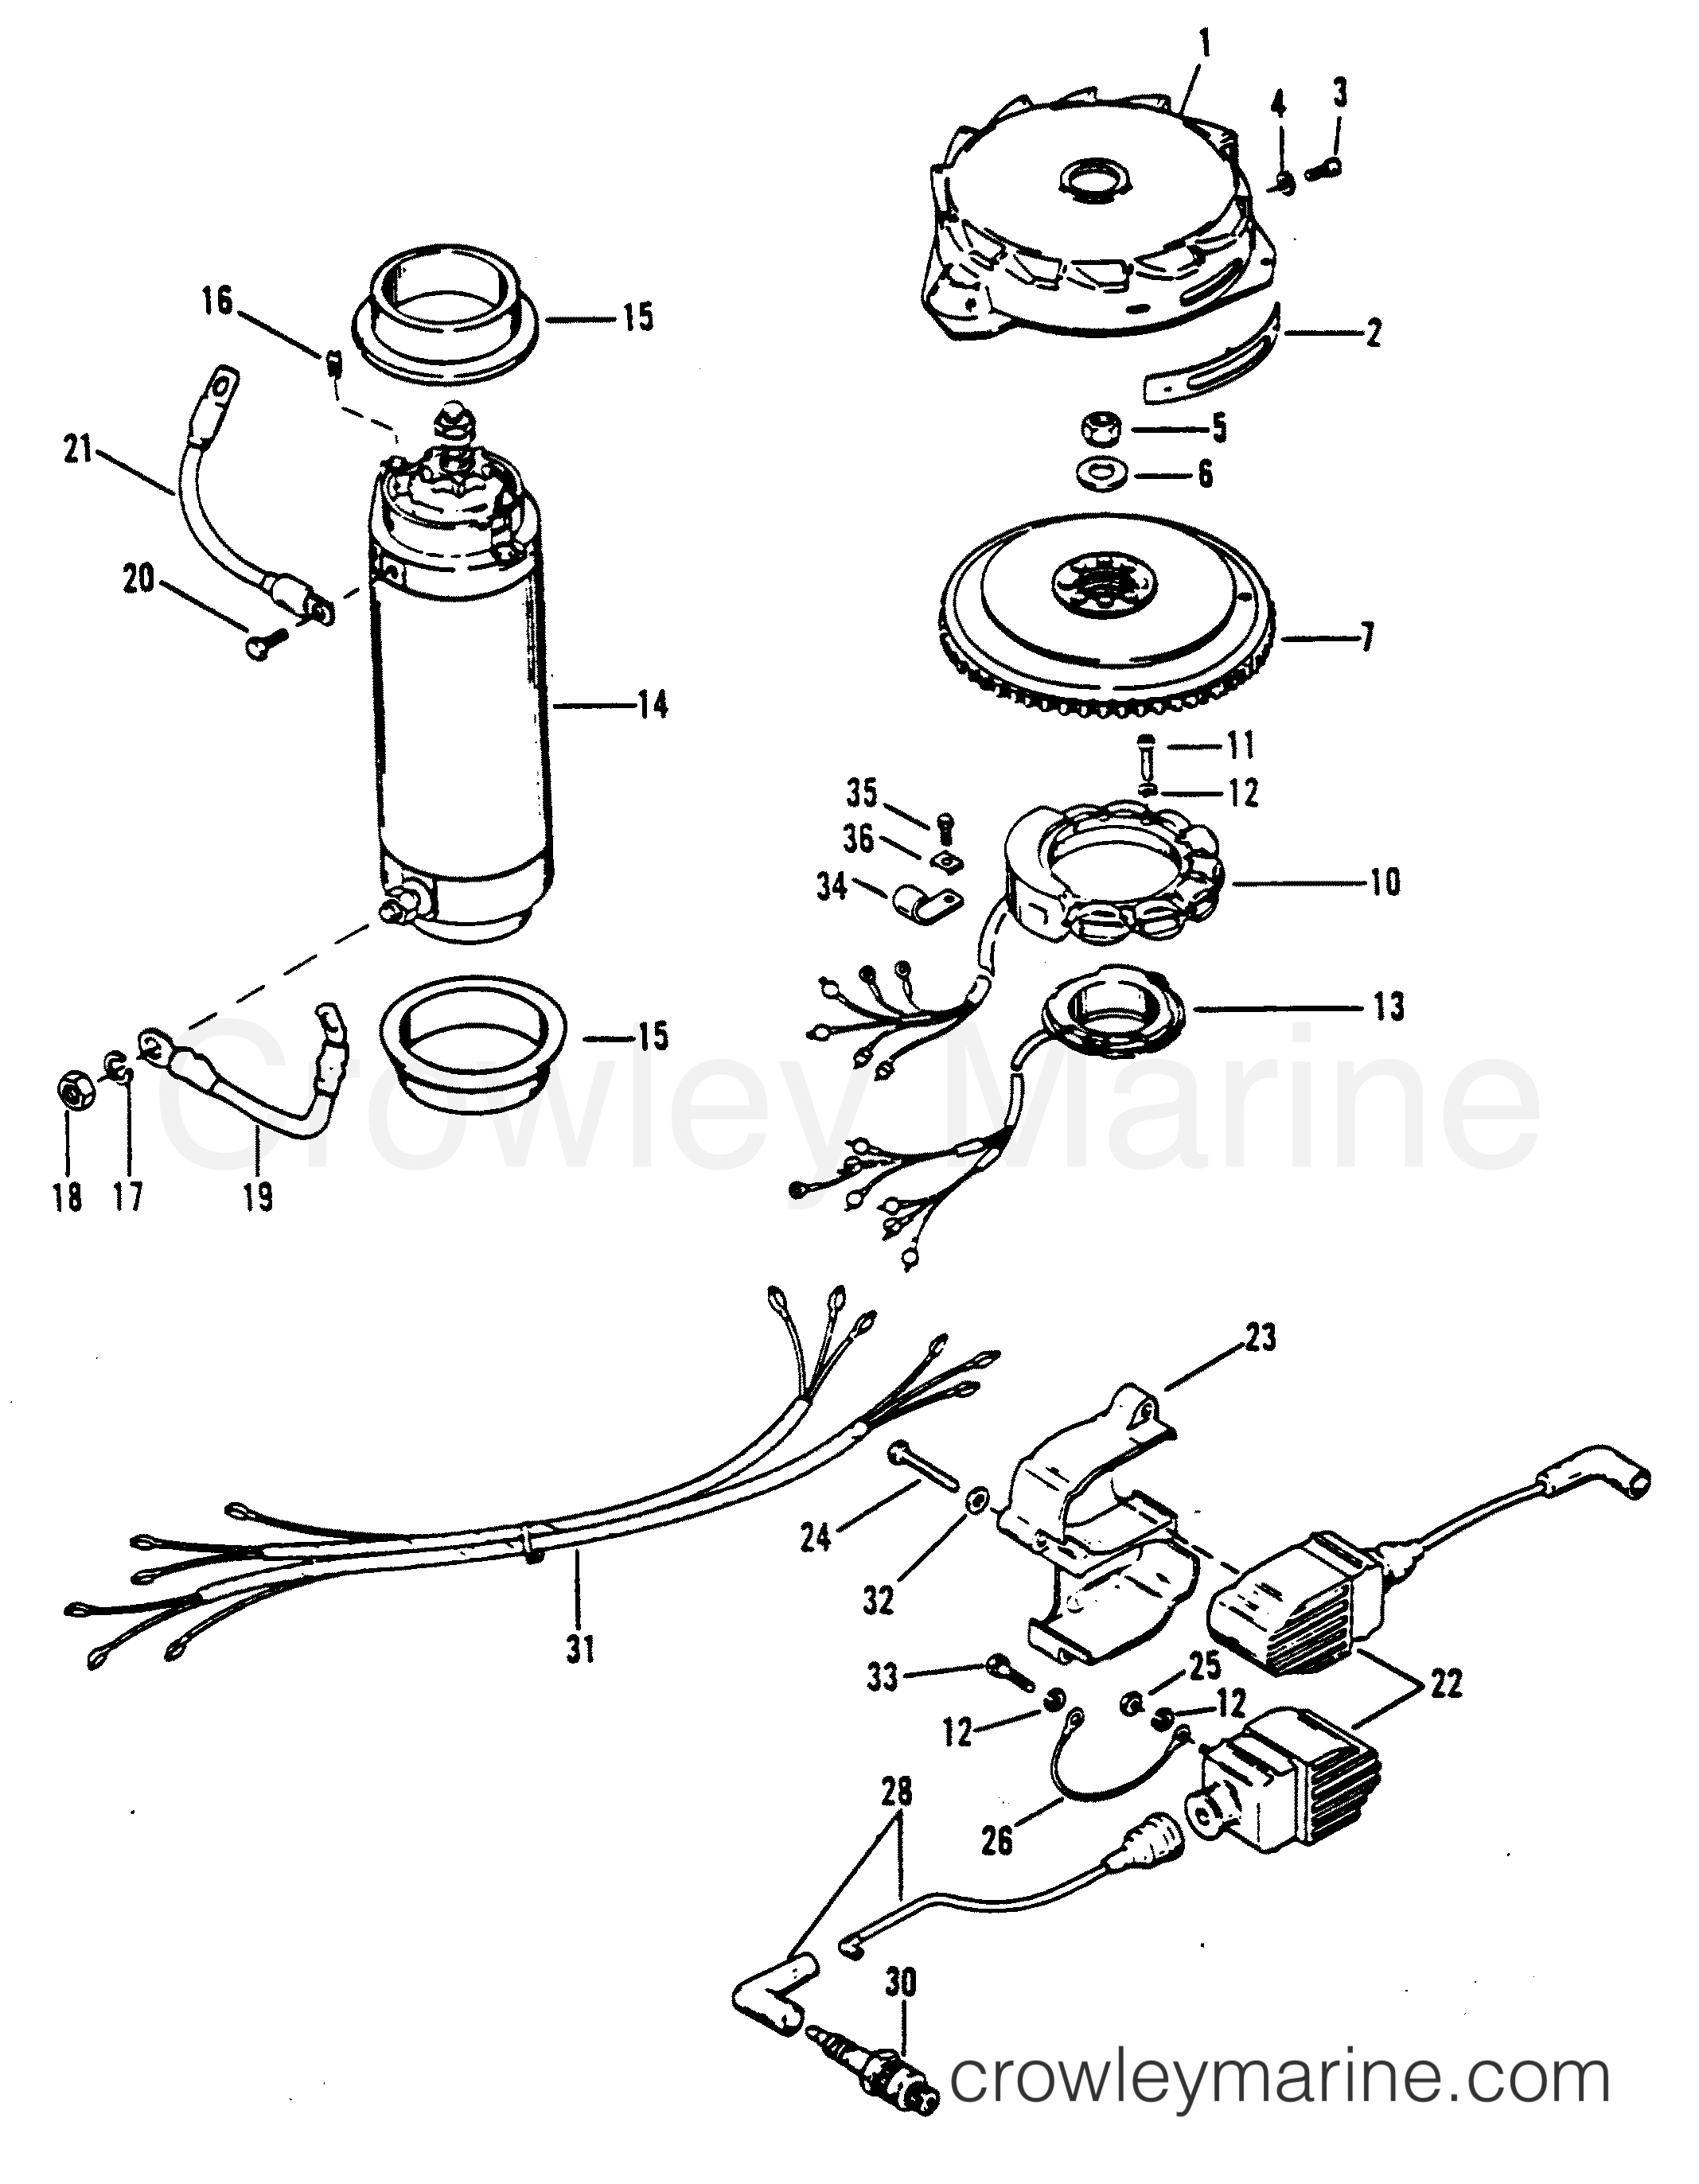 Flywheel Starter Motor And Ignition Coils